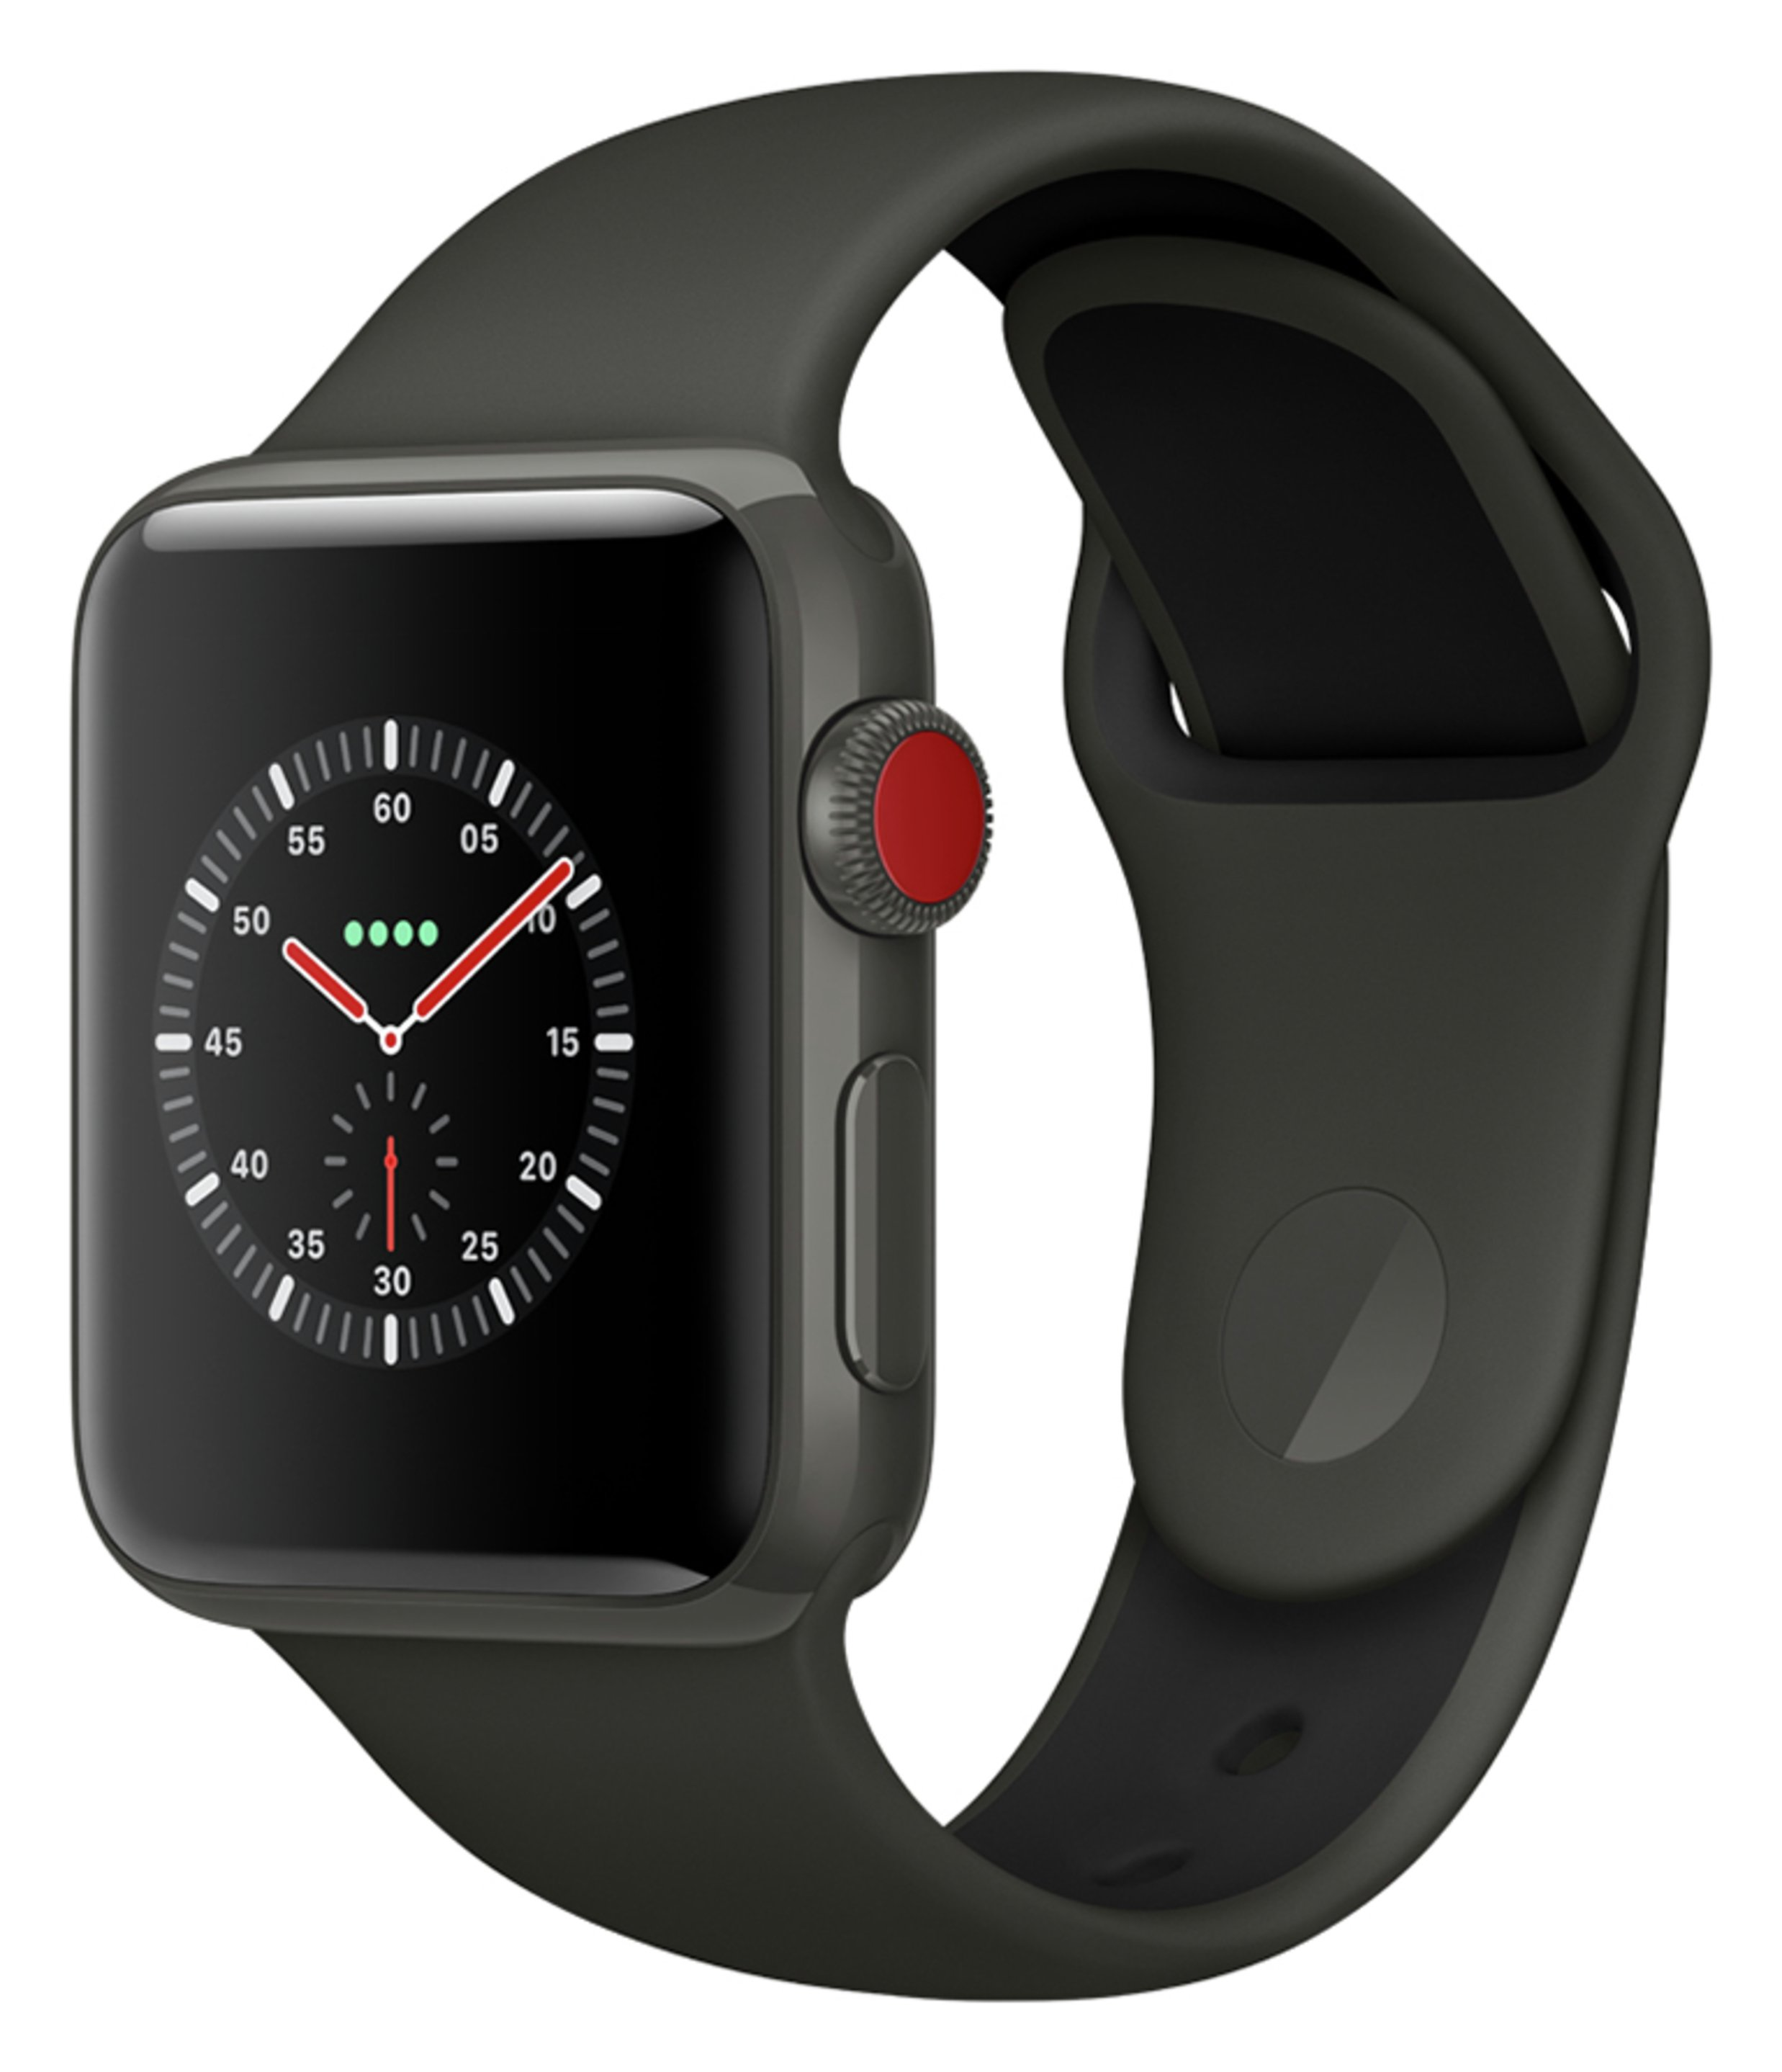 Apple Watch S3 Edition Cellular 42mm Grey Ceramic cheapest retail price